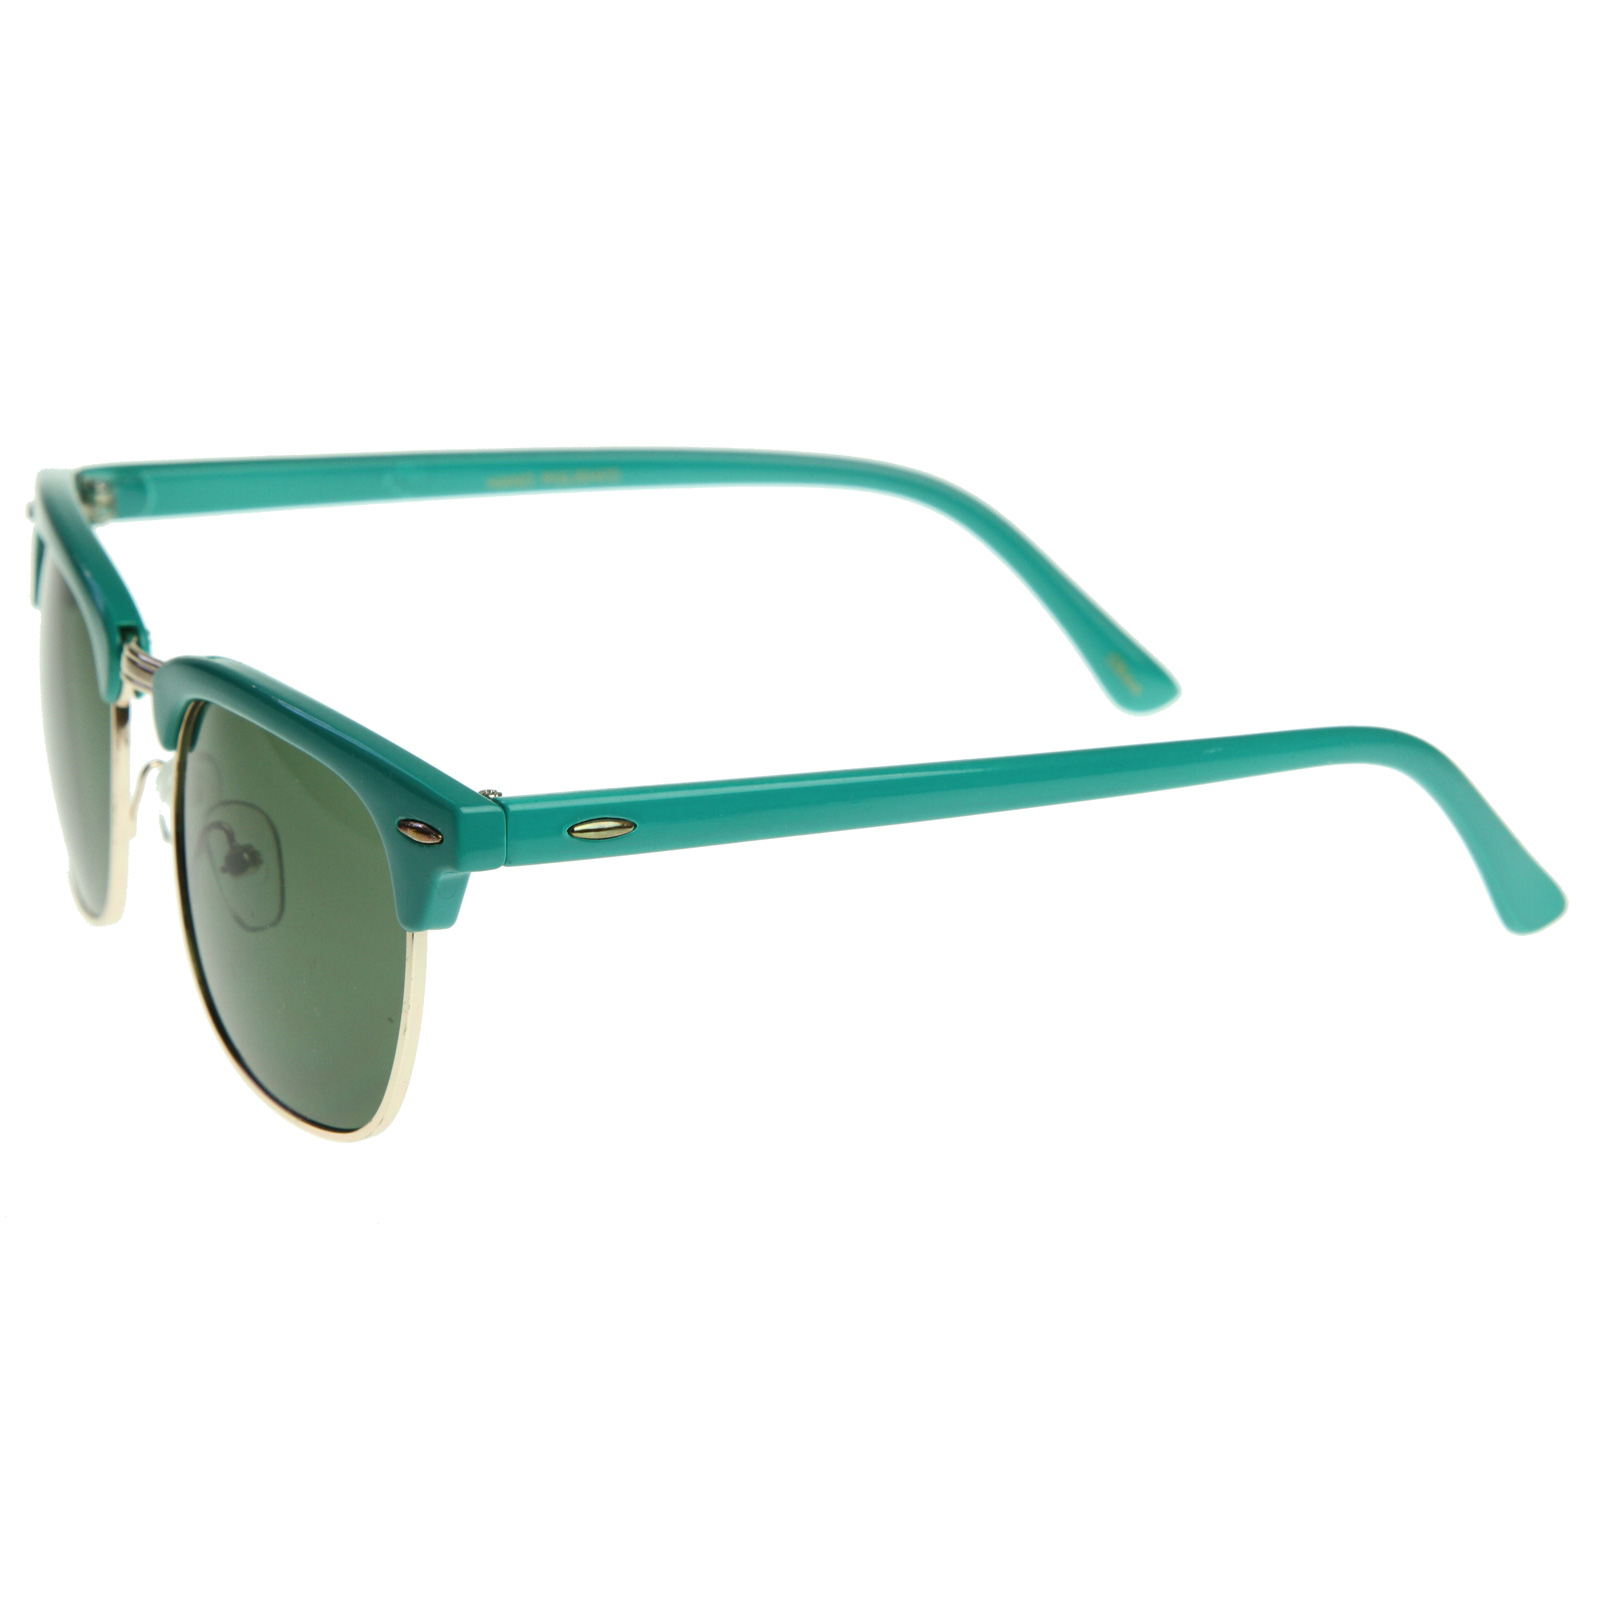 Wayfarer Glasses Half Frame : Retro Bright Multi Color Half Frame Clubmaster Style ...